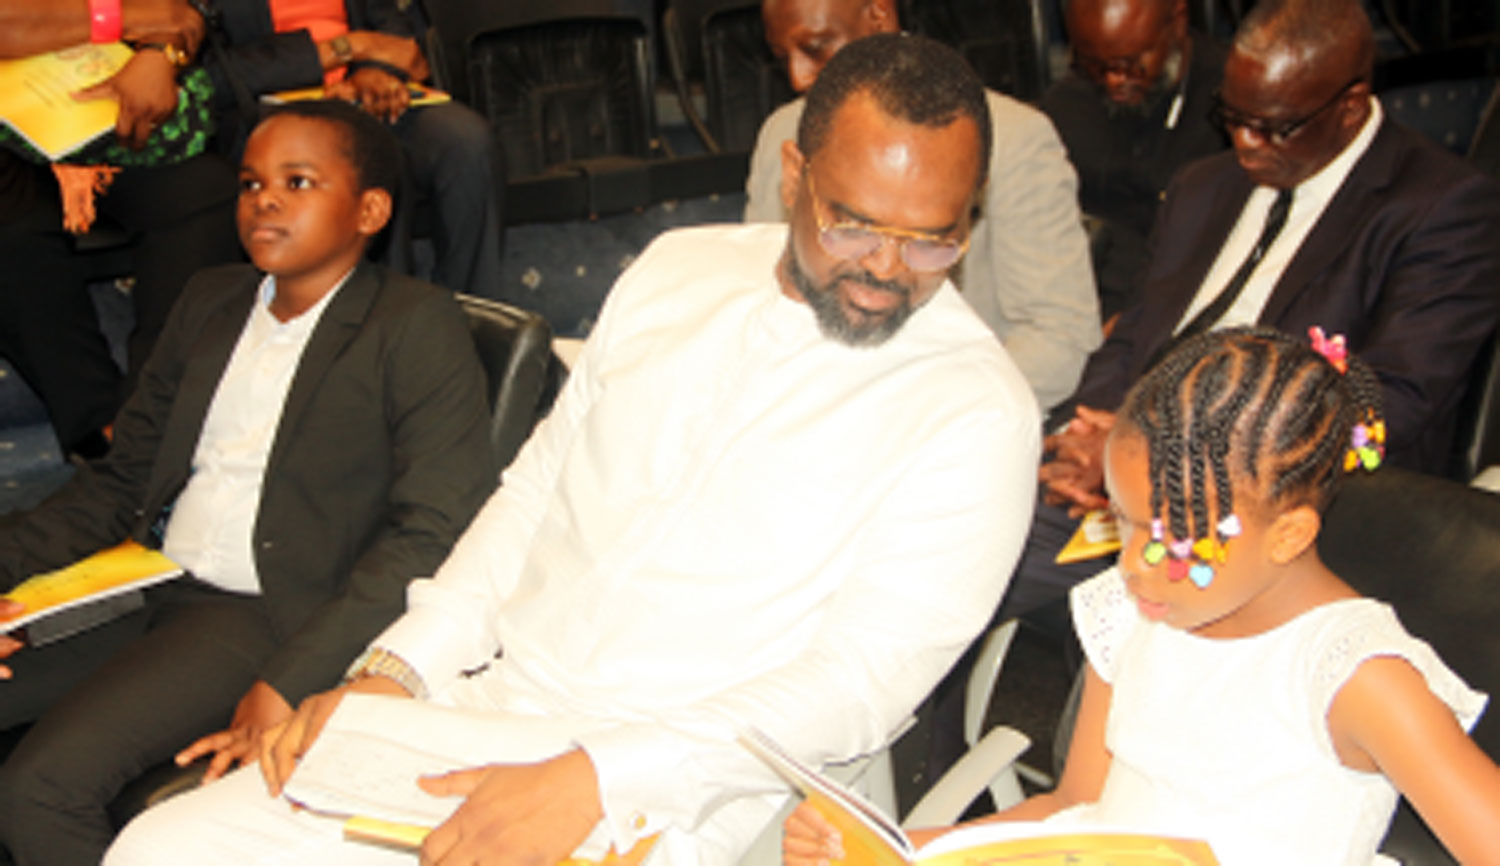 From left— Son of the deceased, Merede; the widower, Mr. Leslie Oghomienor, and daughter, Ajua, at the funeral service for late Mrs Yetunde Alatede Oghomienor(nee Ogunsola), at the Guiding Light Assembly, Parkview Estate, Lagos, yesterday. Photos: Kehinde Shonola.